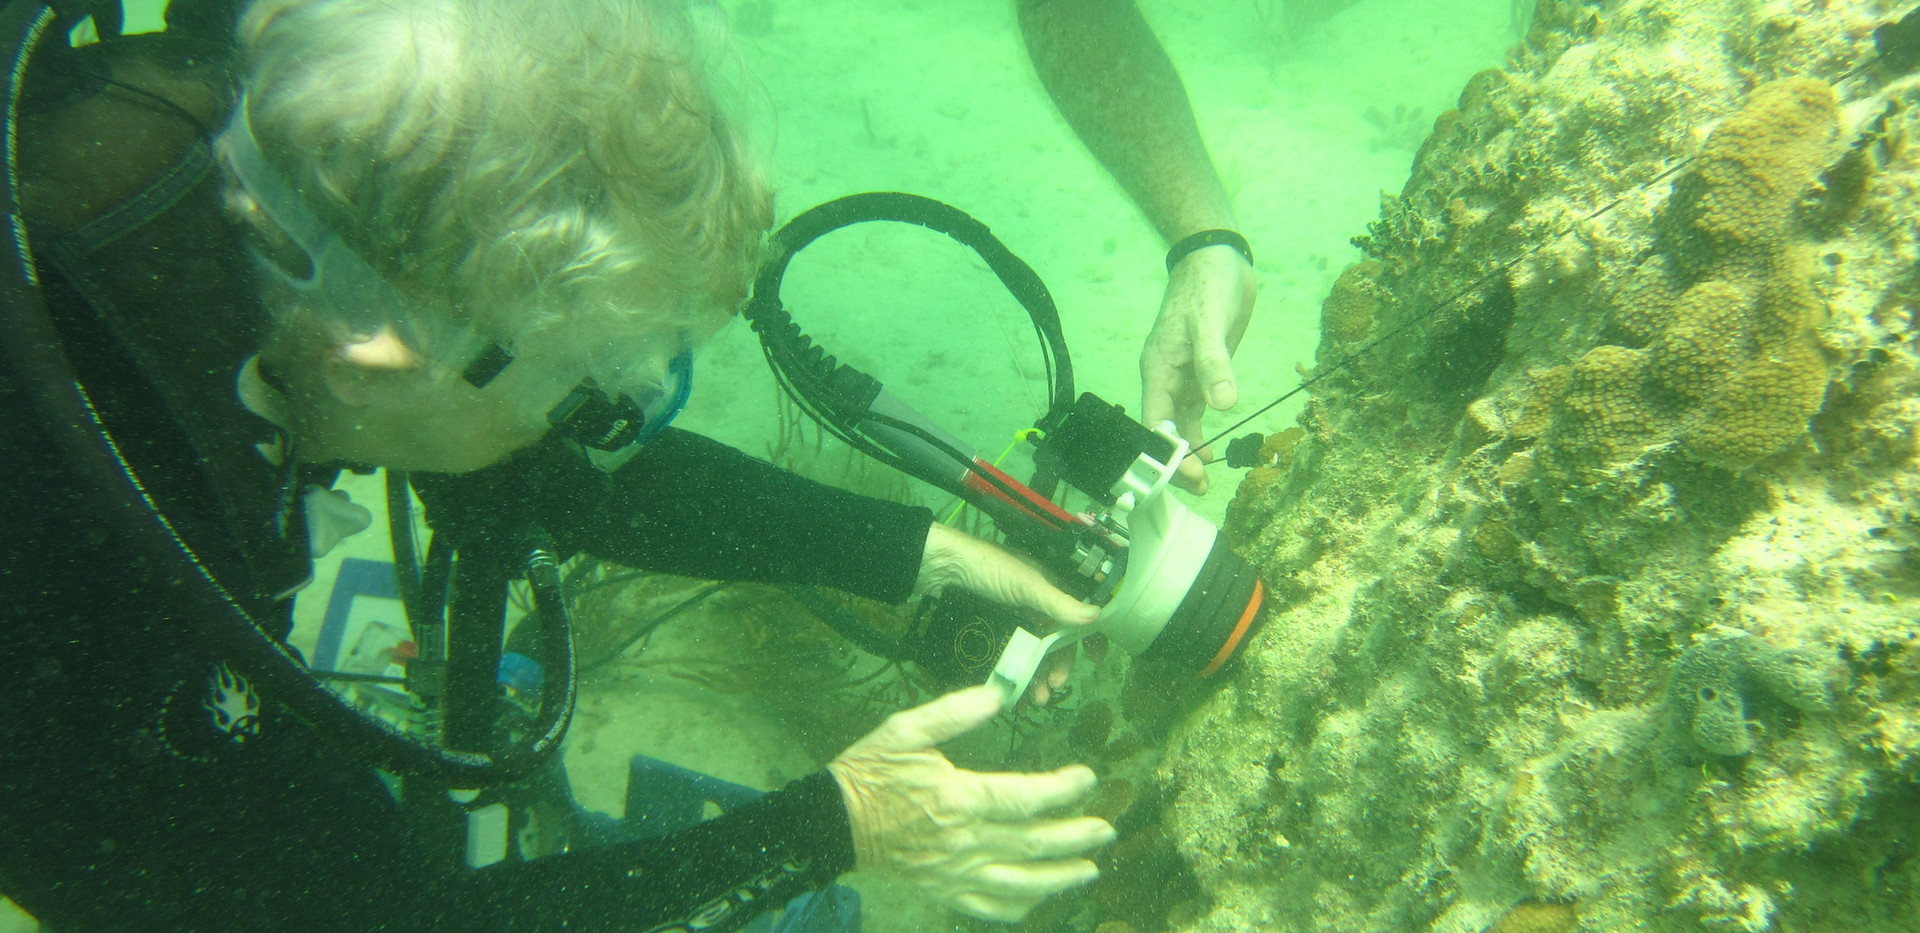 Deploying CISME on a small patch of live coral on a large mostly dead coral. Note incline of deployment